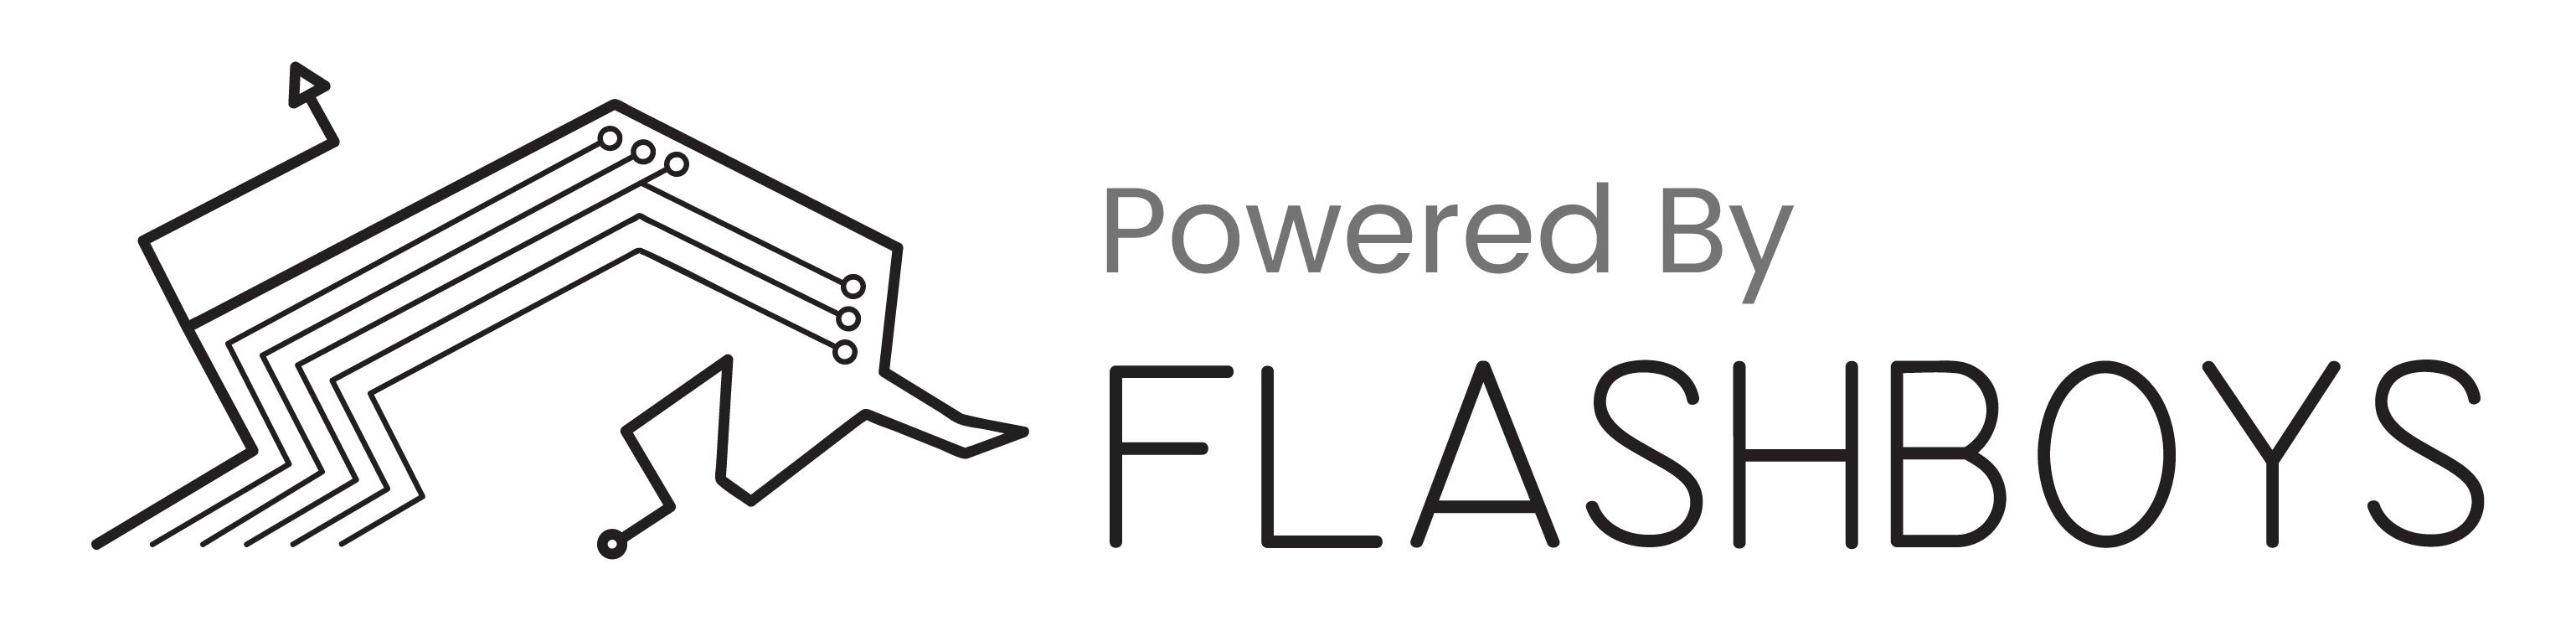 Flashboys_logo_powered_by-02